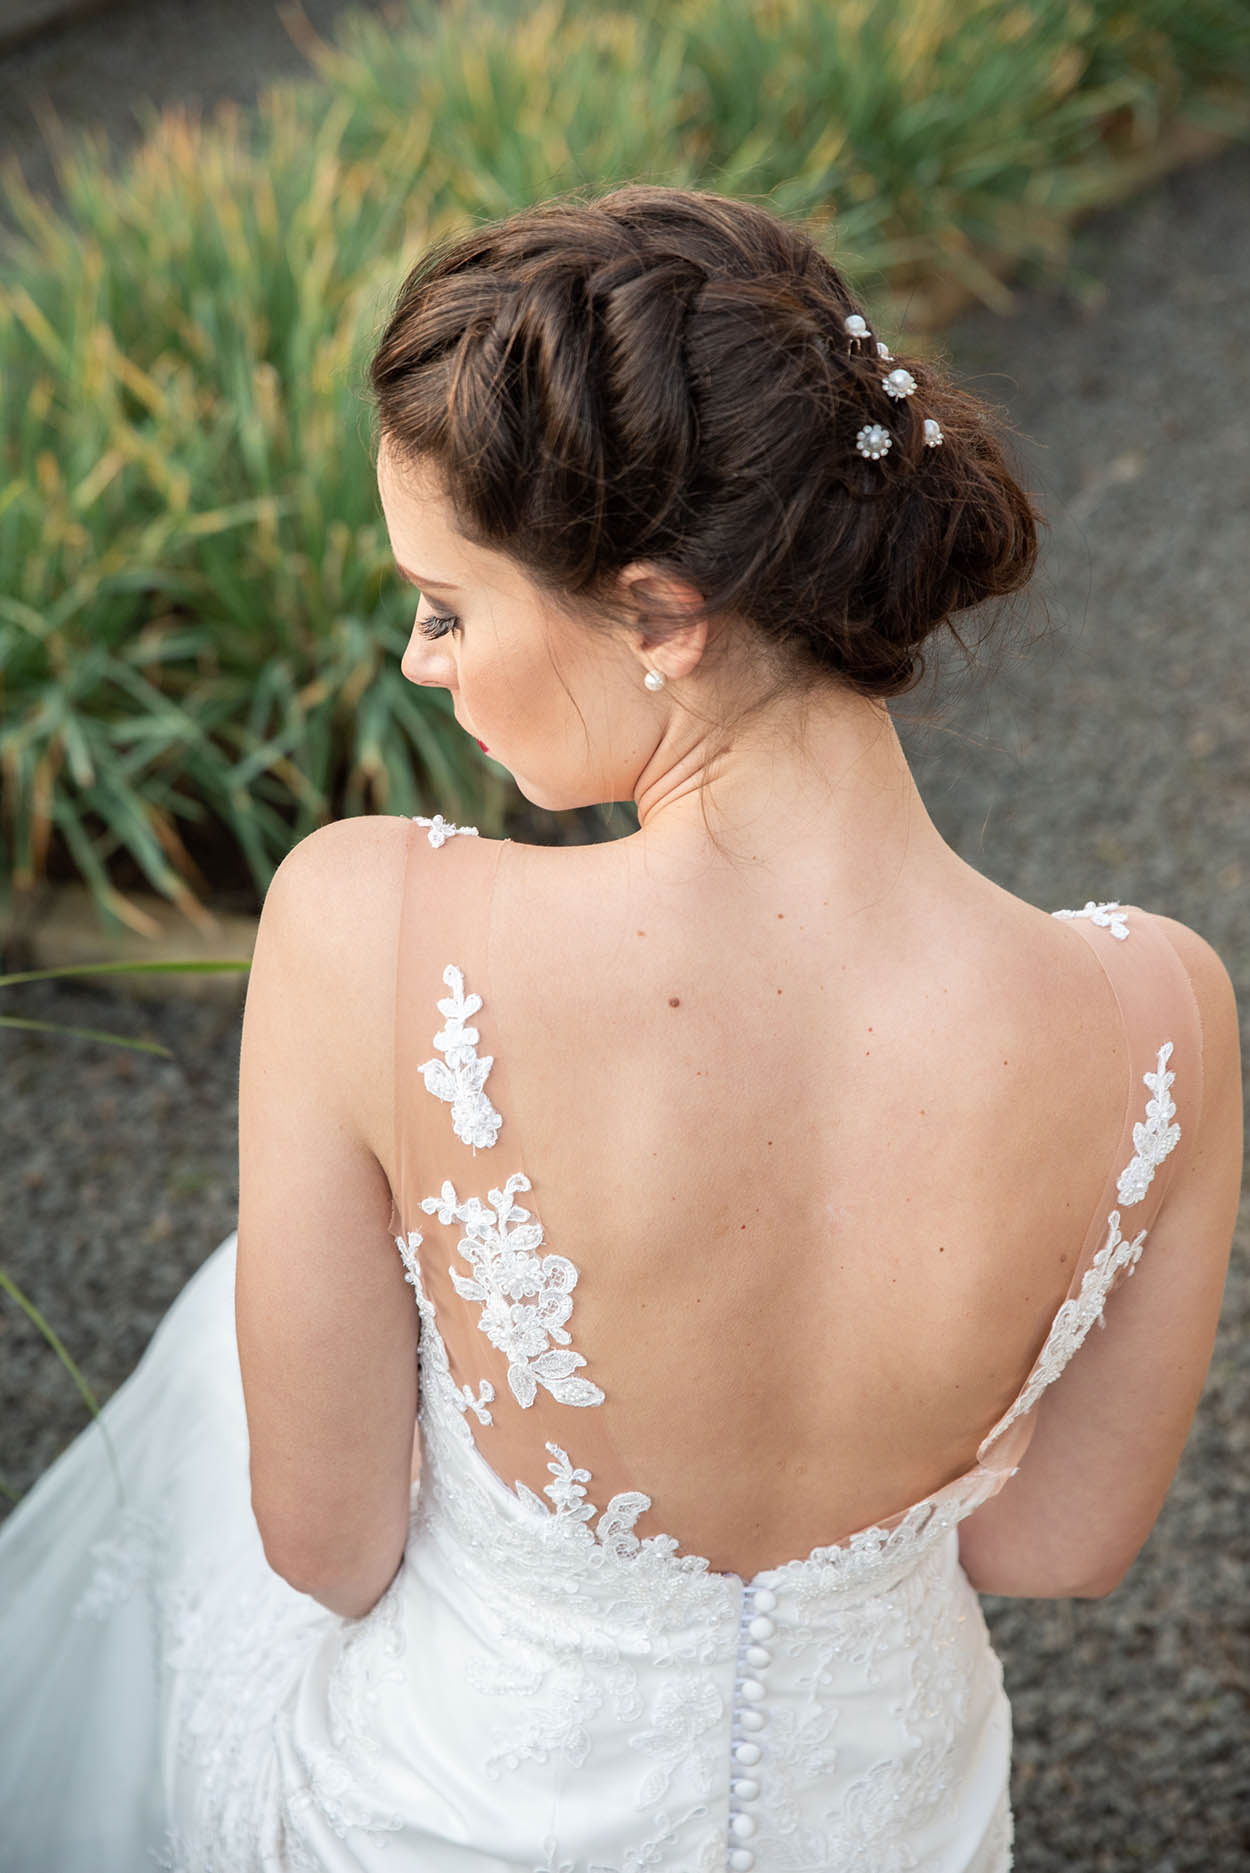 wedding photo by Mudboots at Monte Bello Estate Bloemfontein bride hair and dress from behind